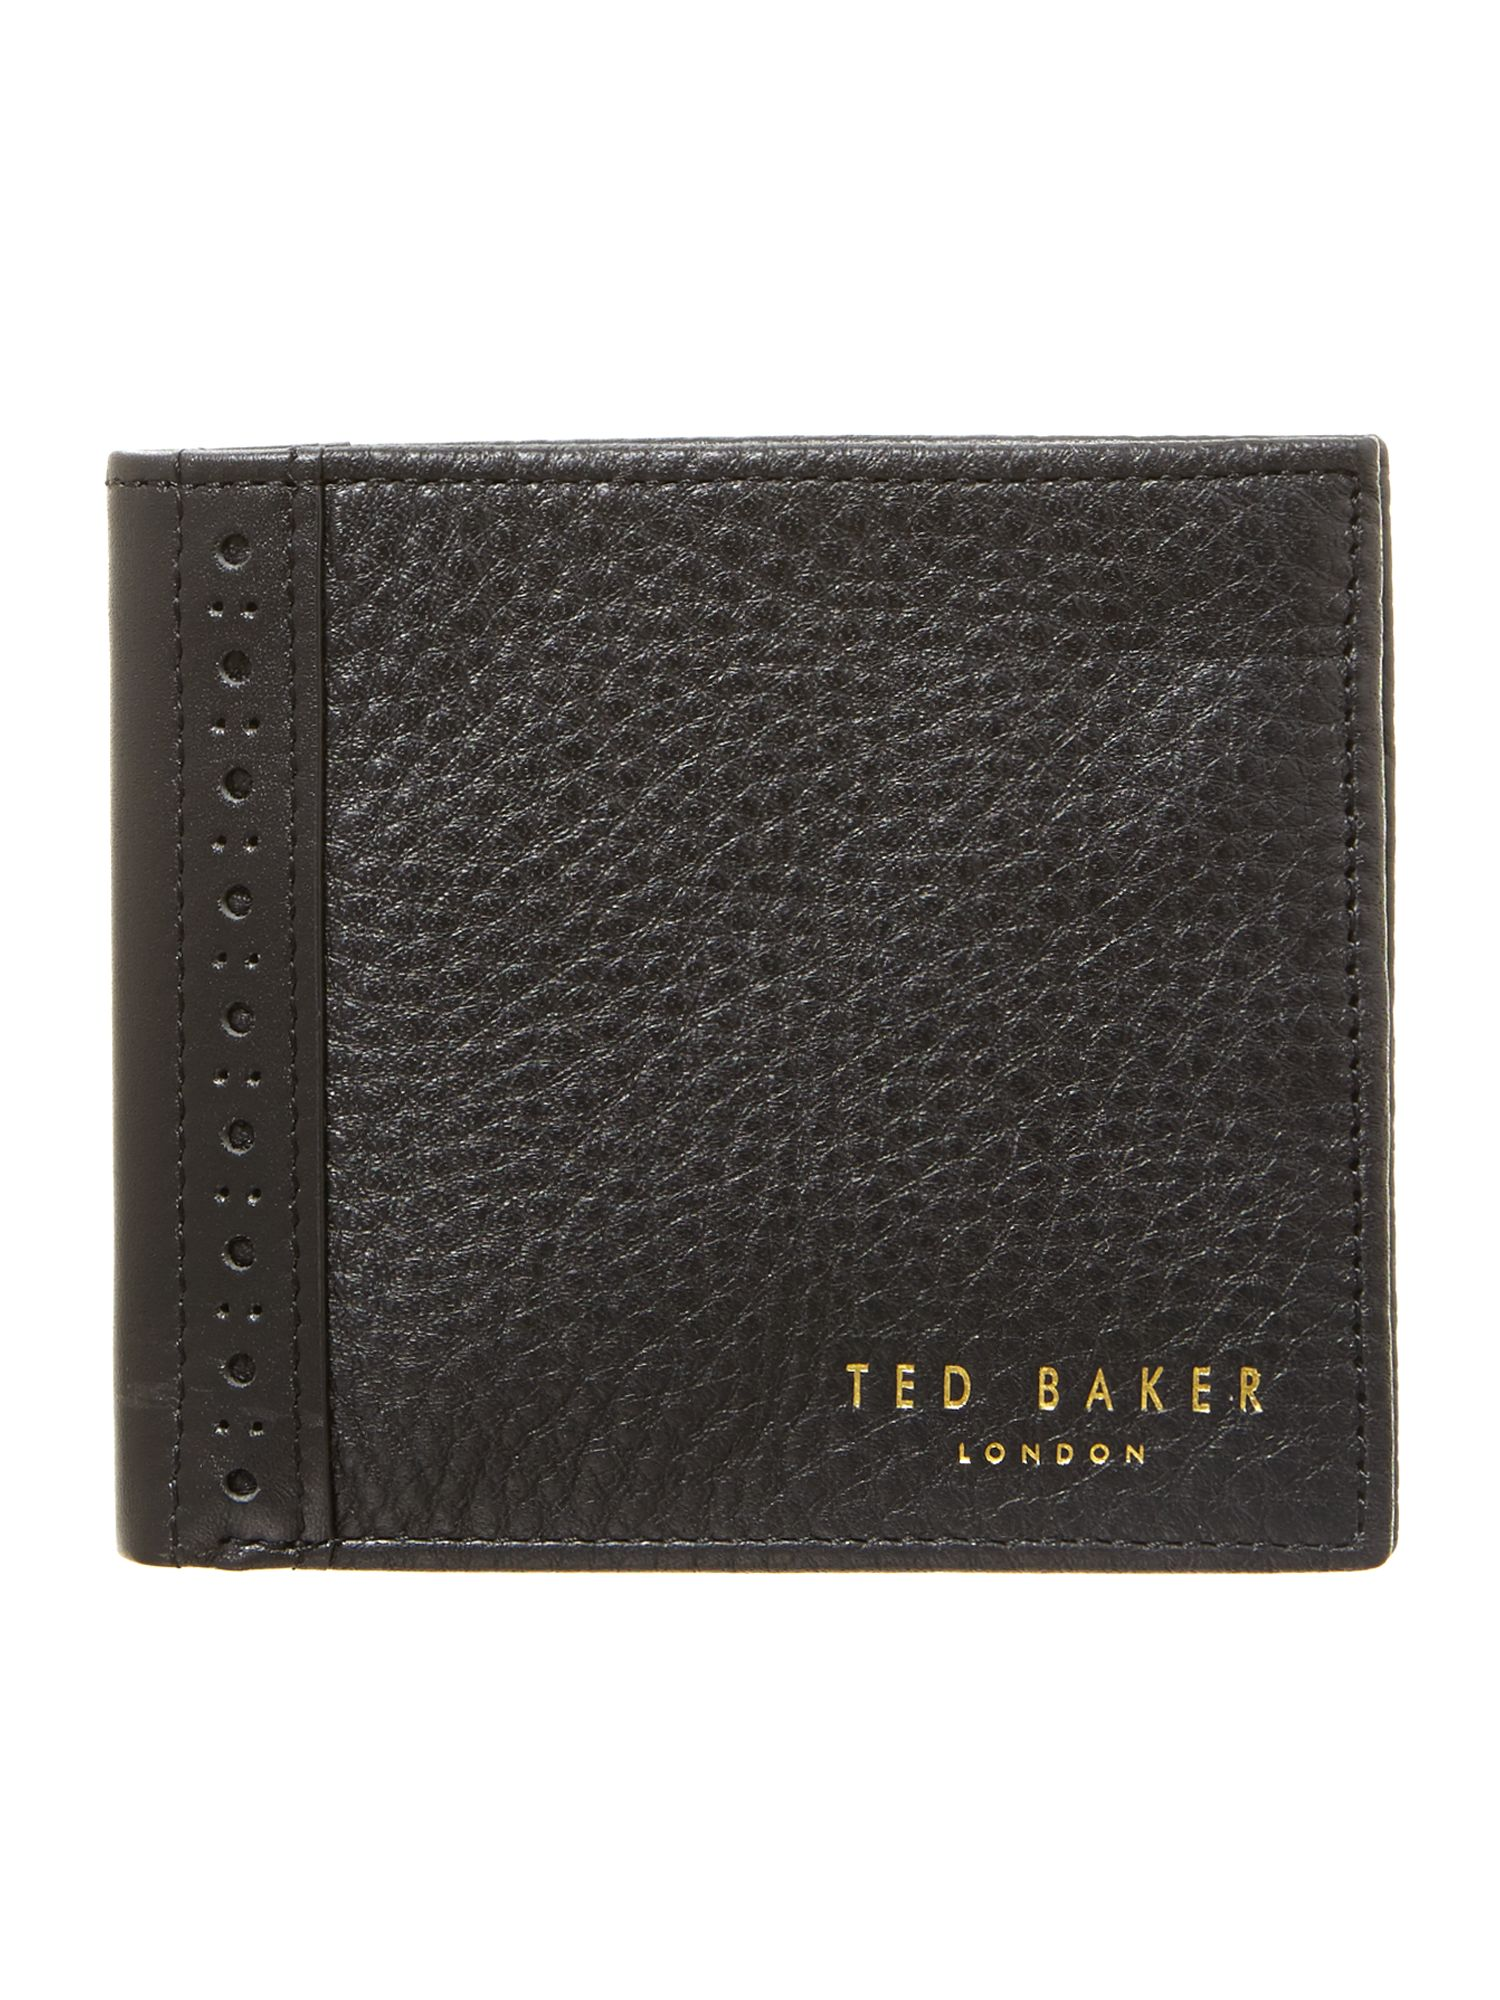 Leather brogue edge wallet